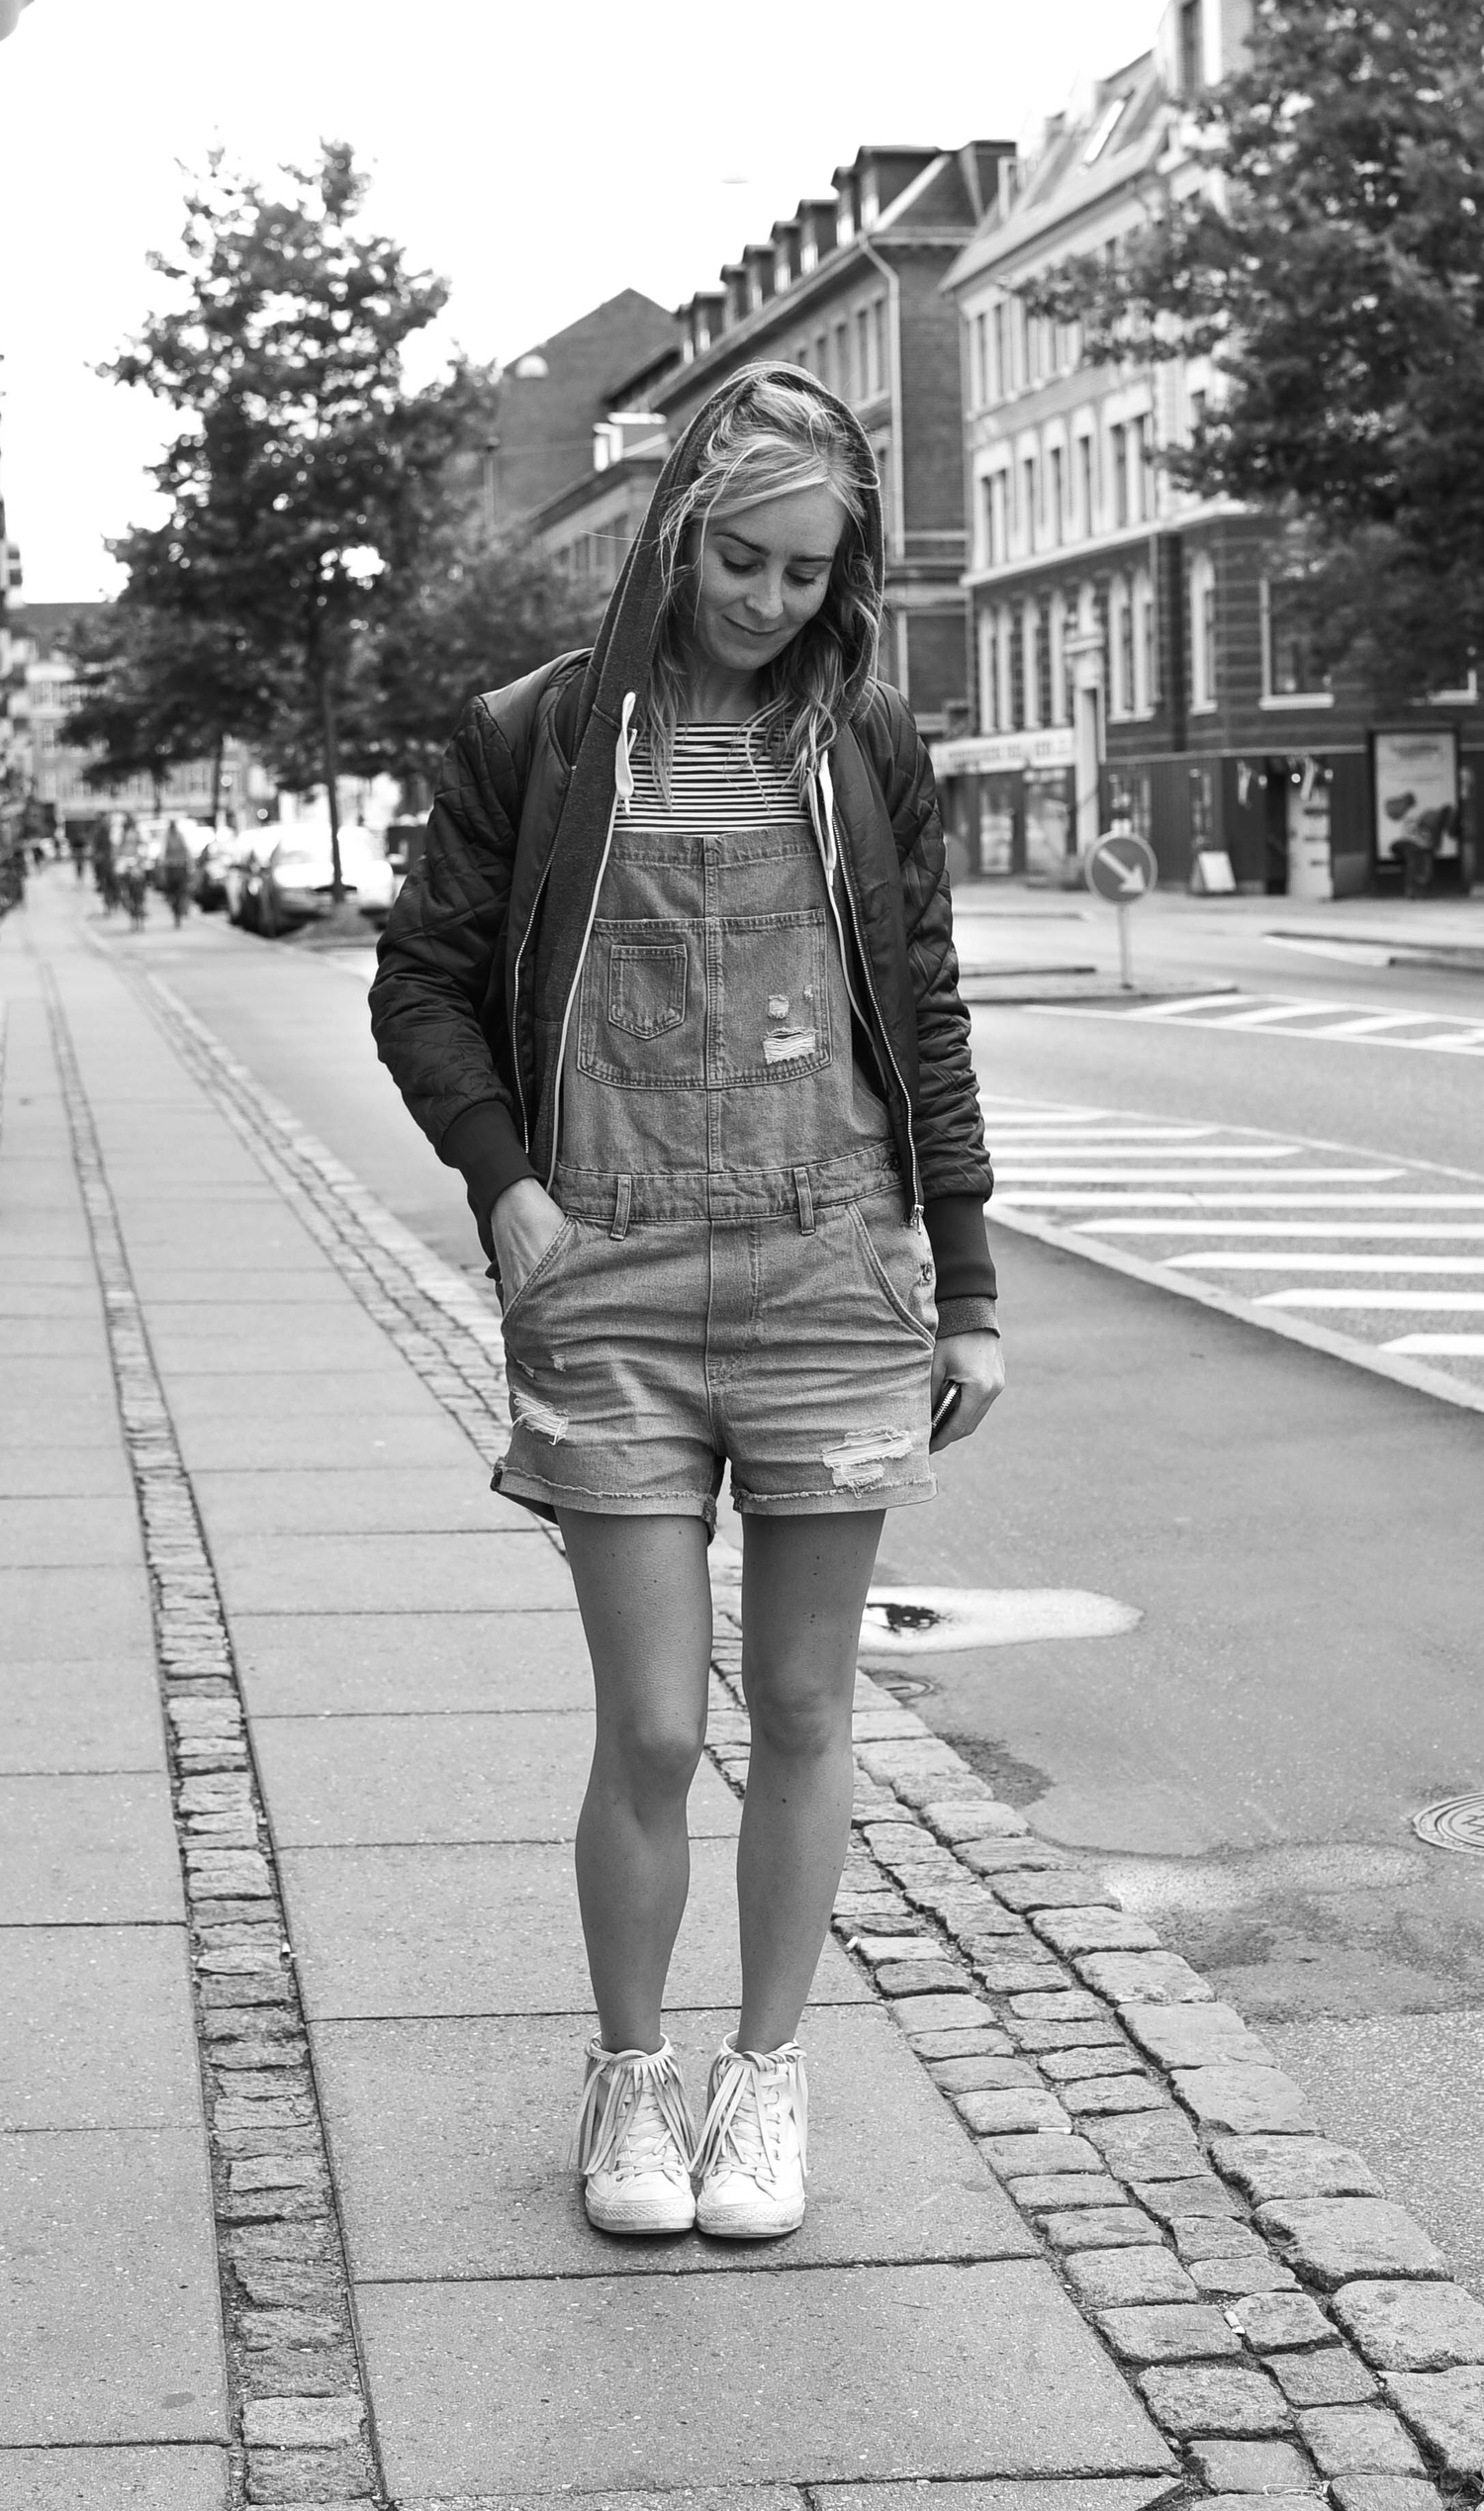 """""""Ahh I have a hangover!"""" ....Live J. plays the Cello by night and chills with friends in Norrebro by day .Casual hoodie, denim overalls and white sneakers...Copenhagen-style."""